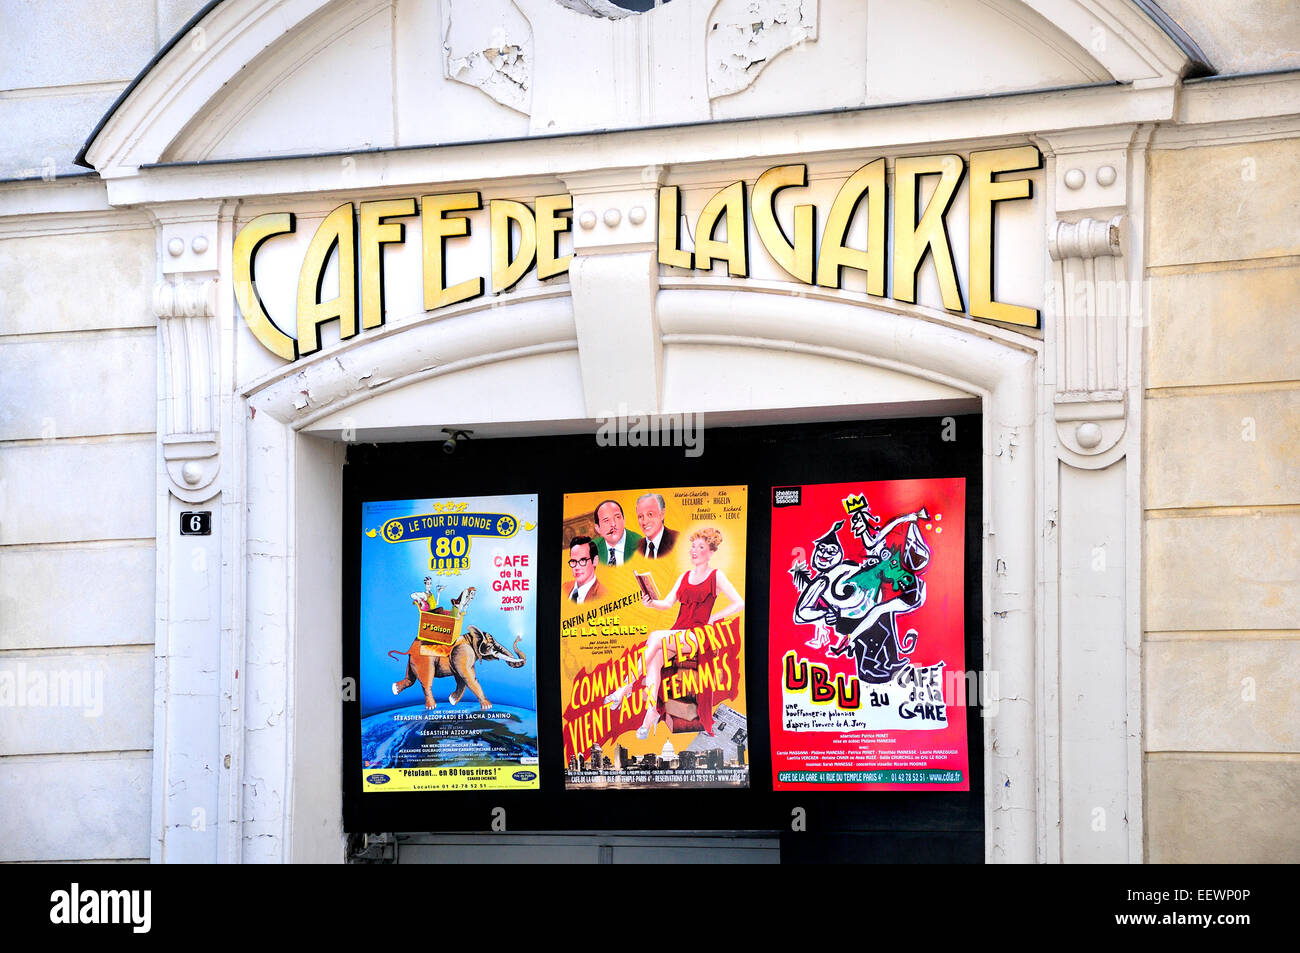 theatre cafe stock photos theatre cafe stock images alamy. Black Bedroom Furniture Sets. Home Design Ideas